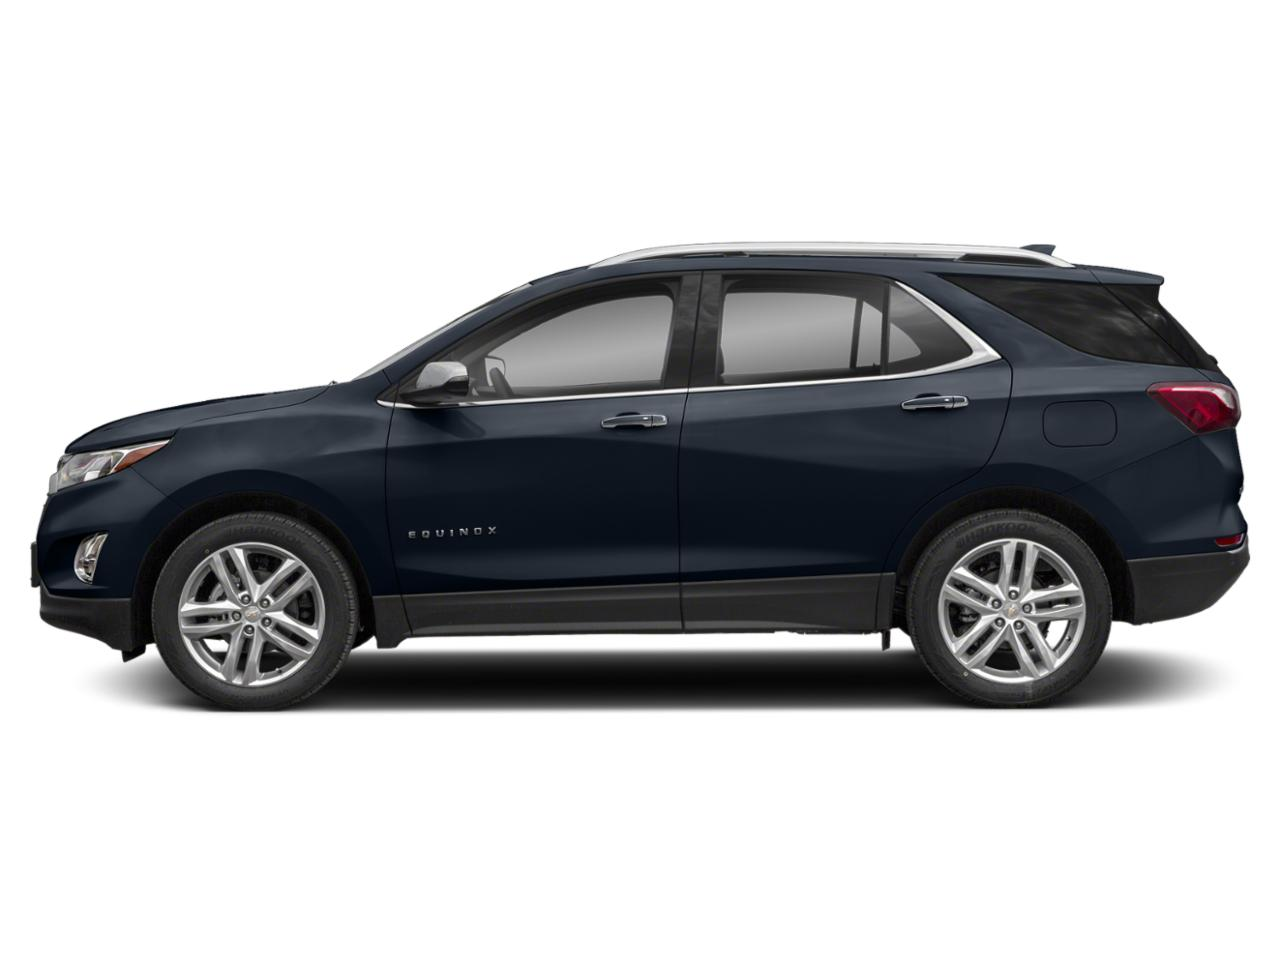 Used 2018 Chevrolet Equinox Premier with VIN 3GNAXWEX2JL349388 for sale in Park Rapids, Minnesota